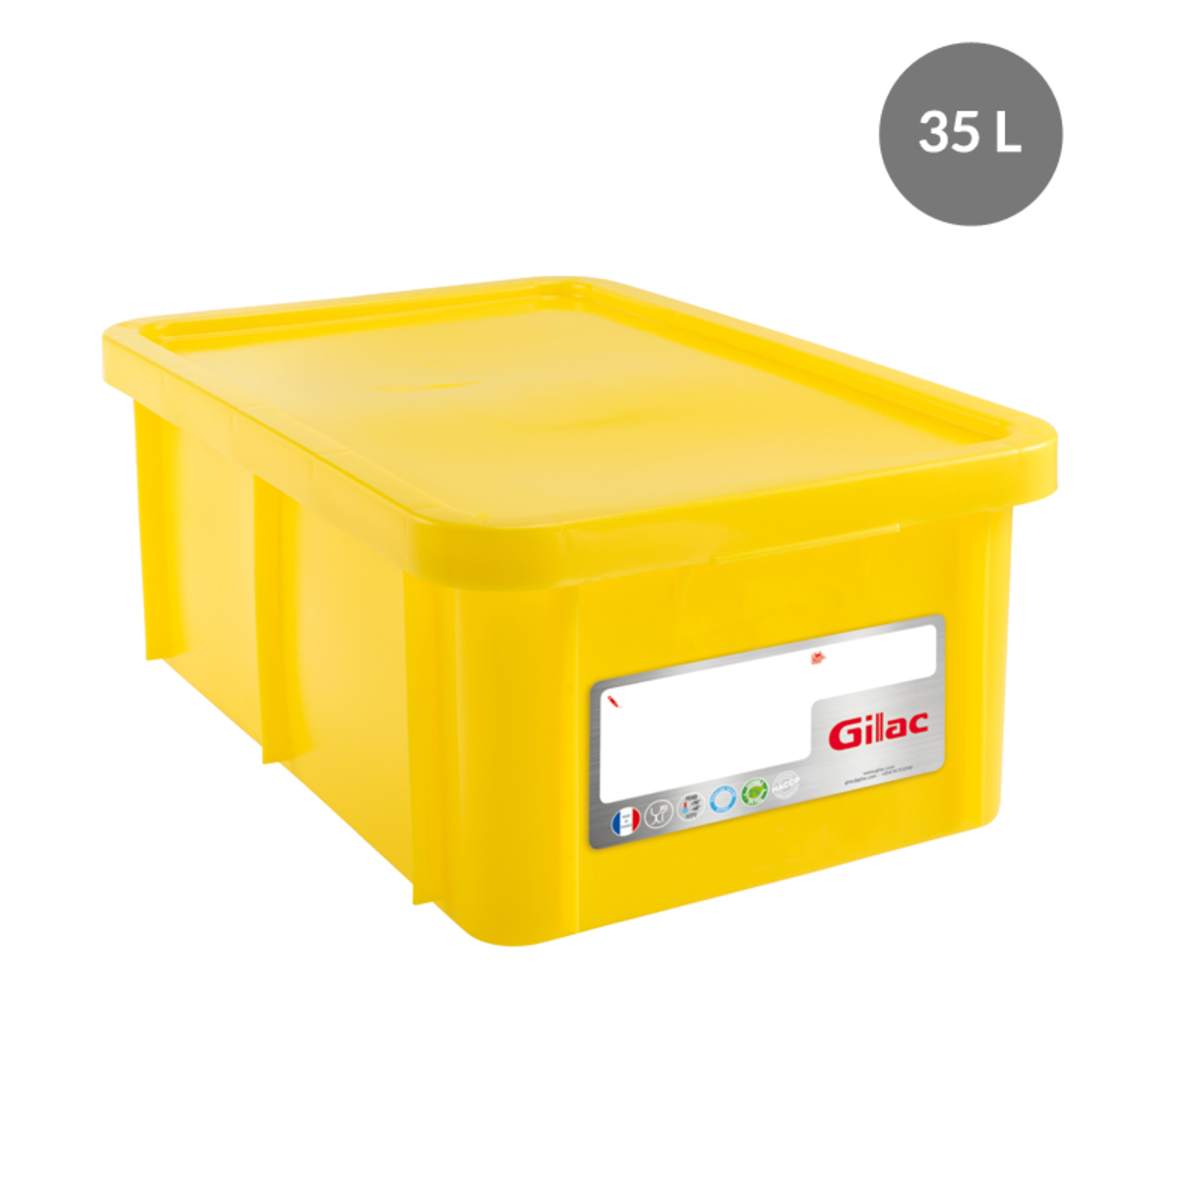 Bac gerbable rectangulaire jaune 35 l Gilac